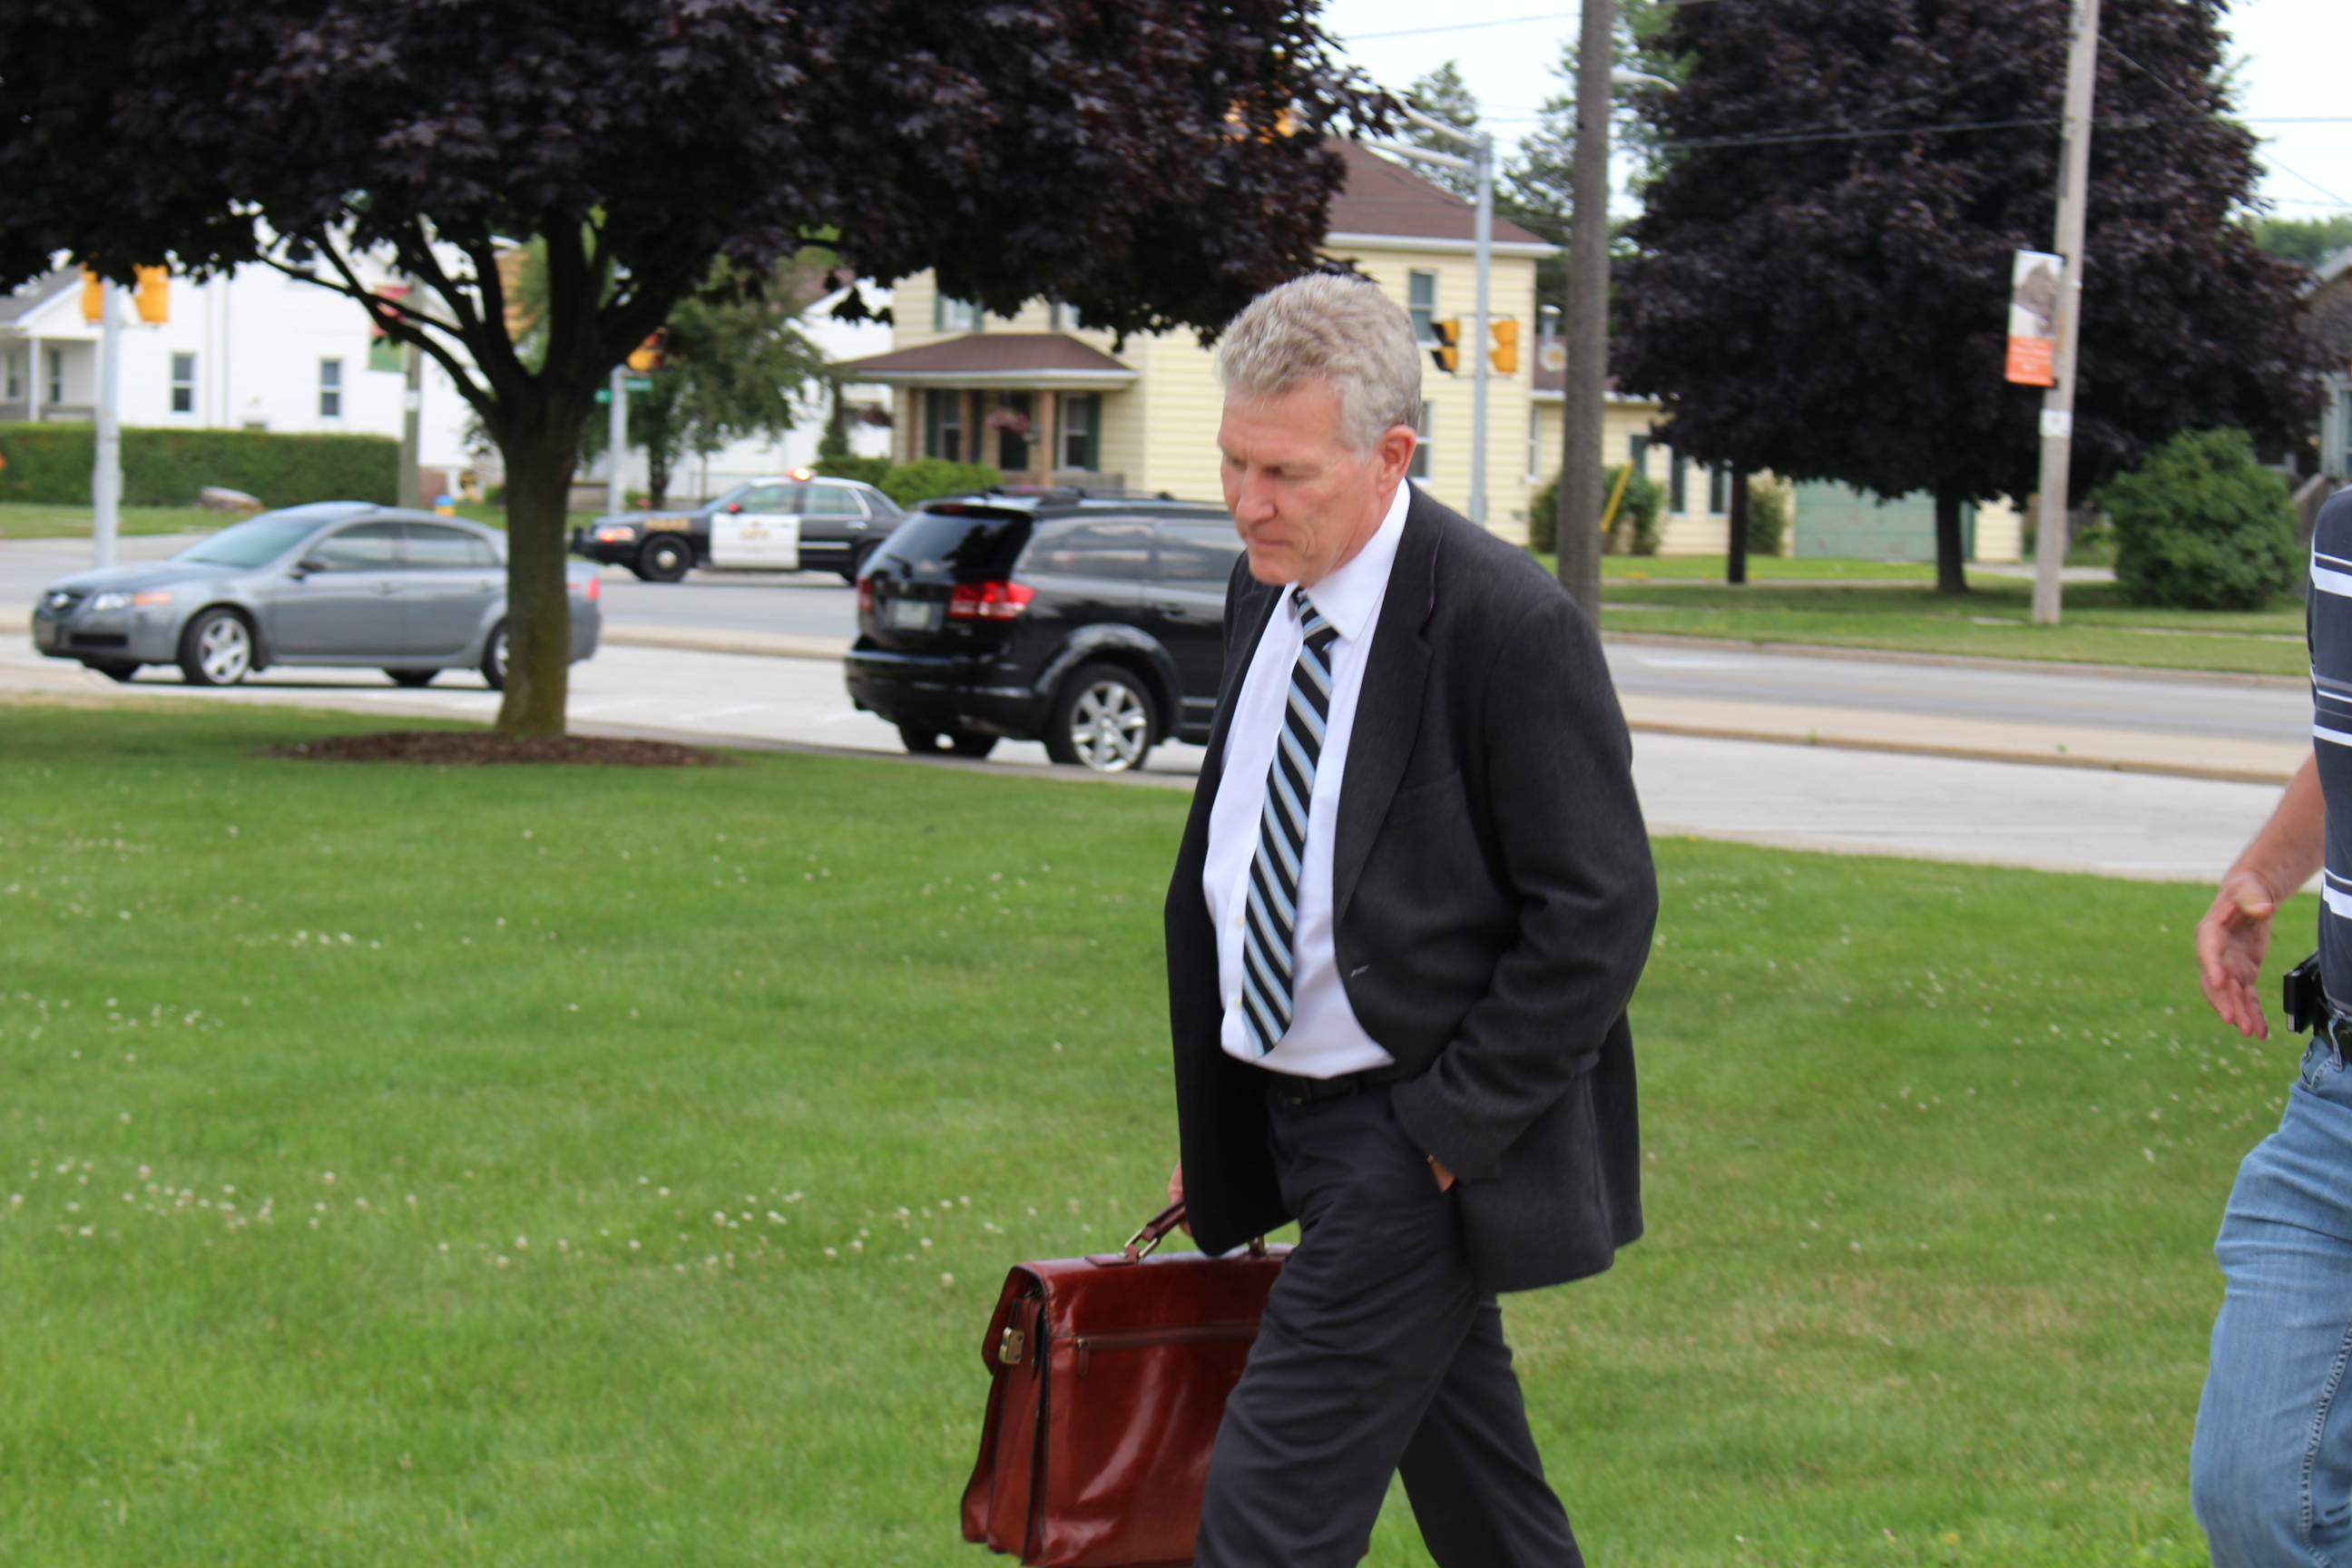 Bonduelle Americas CEO Daniel Vielfaure arrives at Tecumseh Town Hall on July 18, 2014 after a fire destroys the Bonduelle plant in Tecumseh. (Photo by Ricardo Veneza)